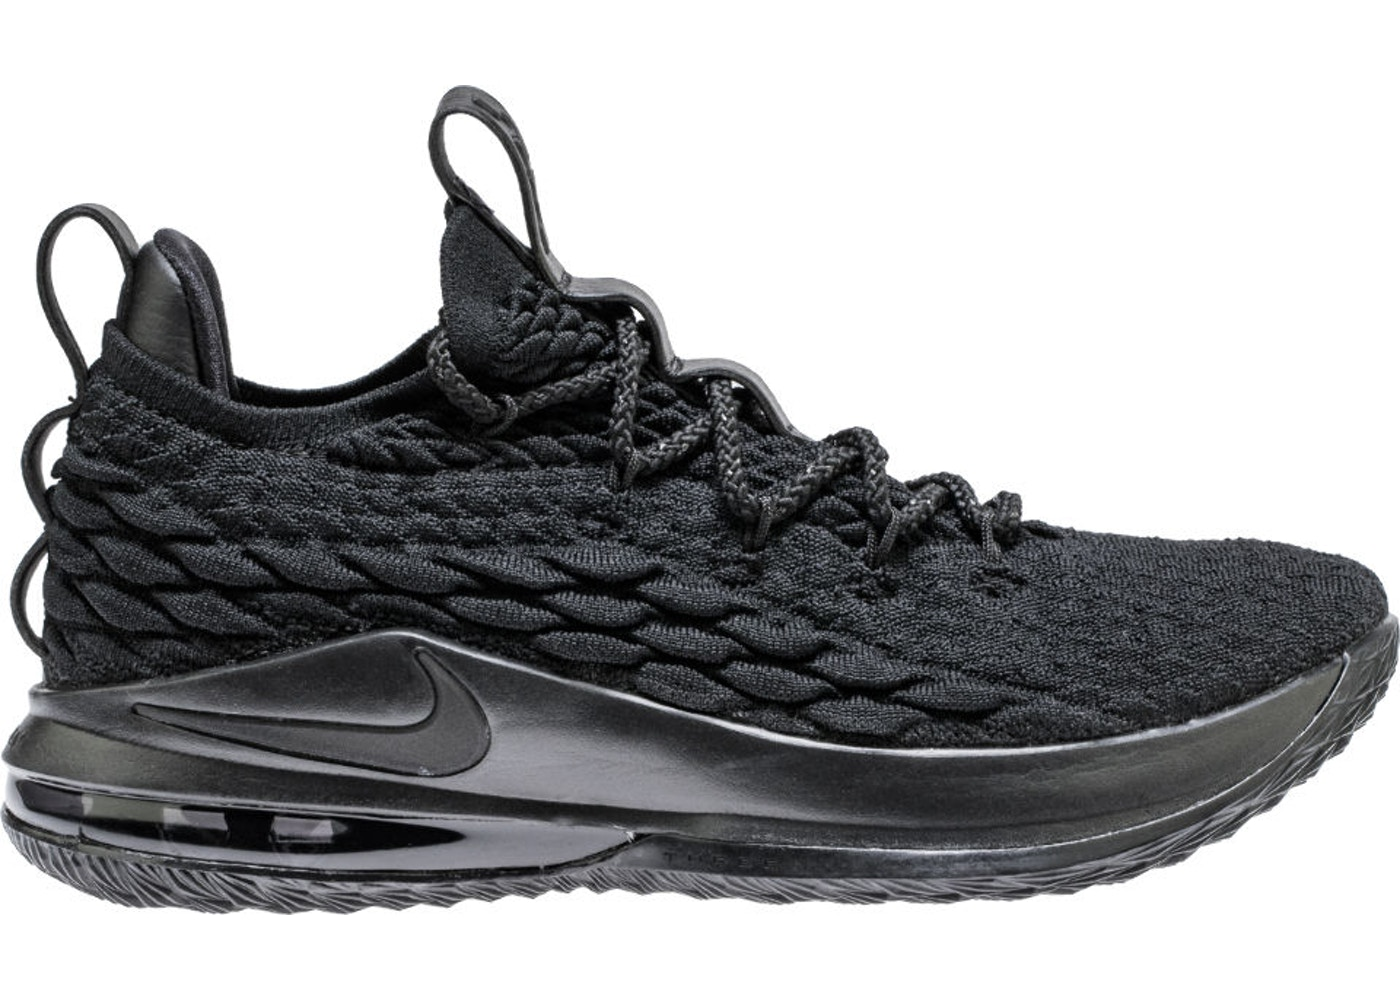 new arrival 32914 0f7d8 LeBron 15 Low Blackout